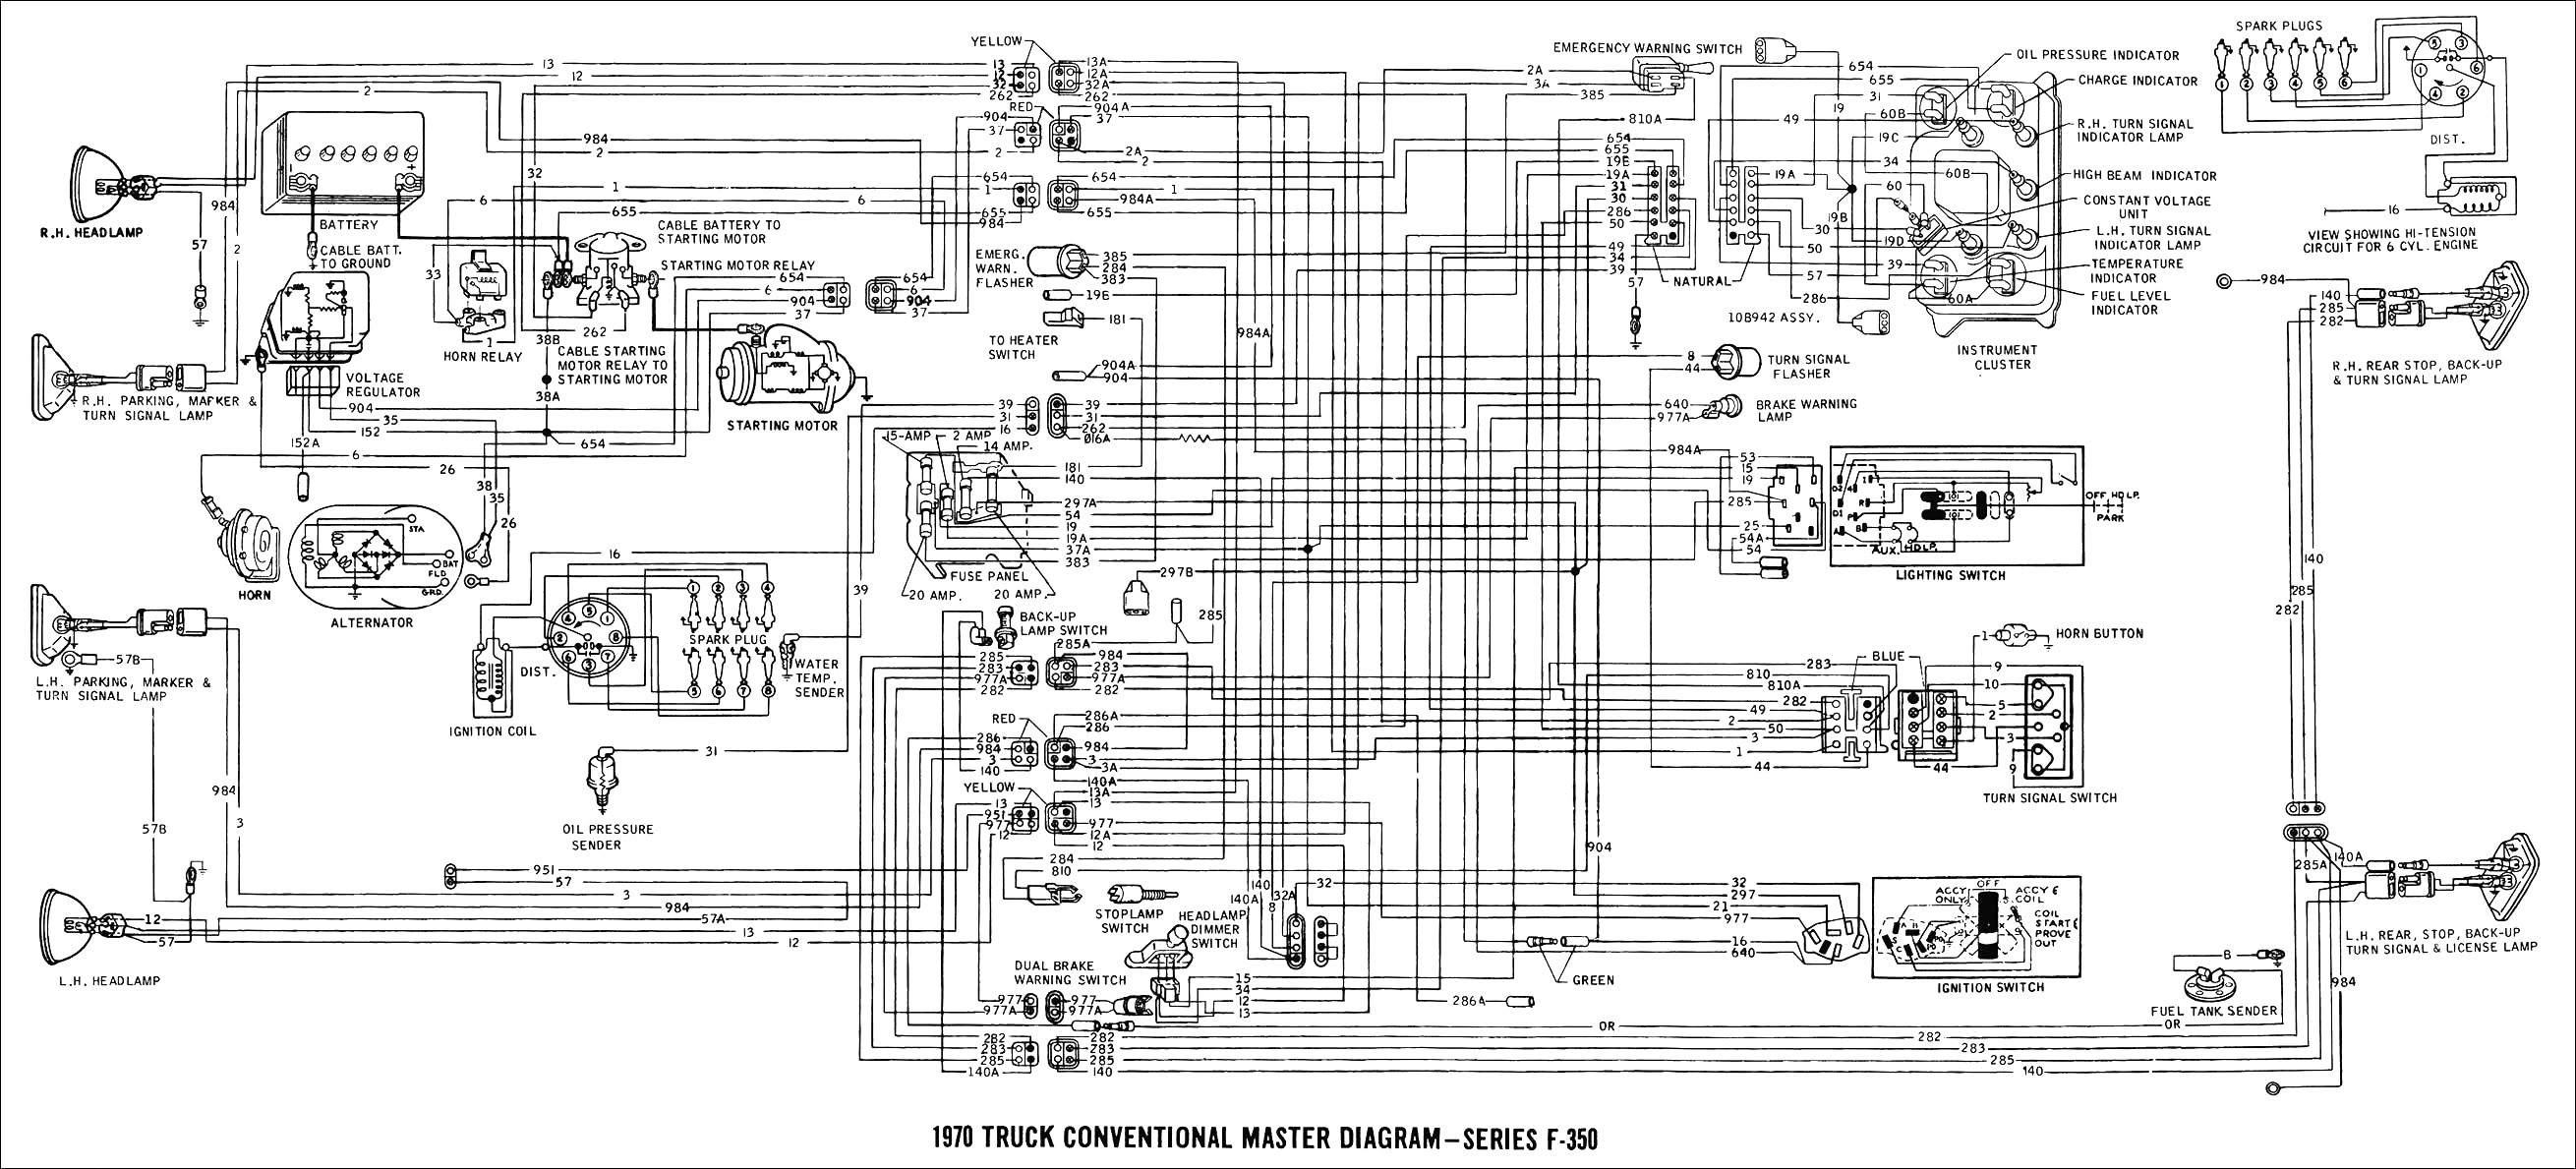 1996 explorer 5 0 engine diagram example electrical wiring diagram u2022 rh huntervalleyhotels co 1996 Ford Explorer 1996 Ford Explorer Eddie Bauer